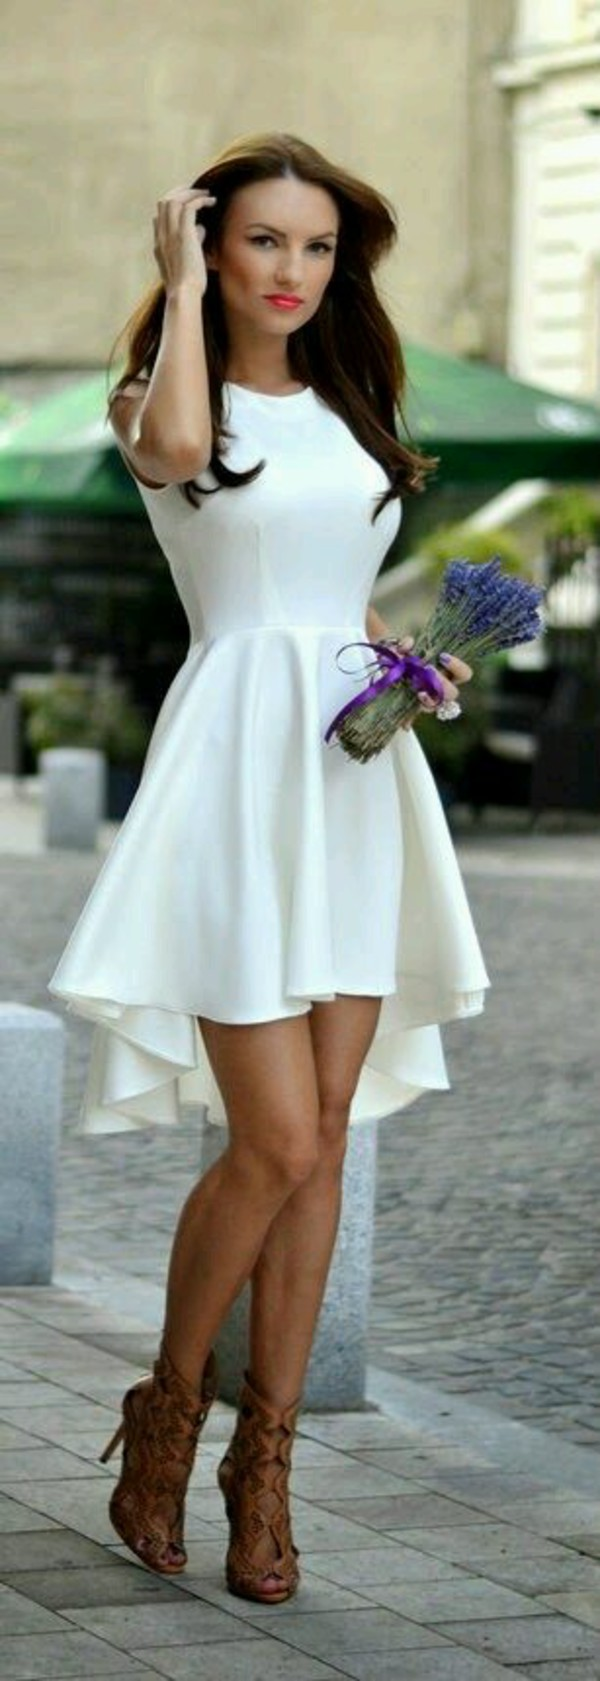 white dress high-low dresses cocktail dress dress shoes tan colored heels summer dress dress white prom dress high low dress skater dress cute brown shoes